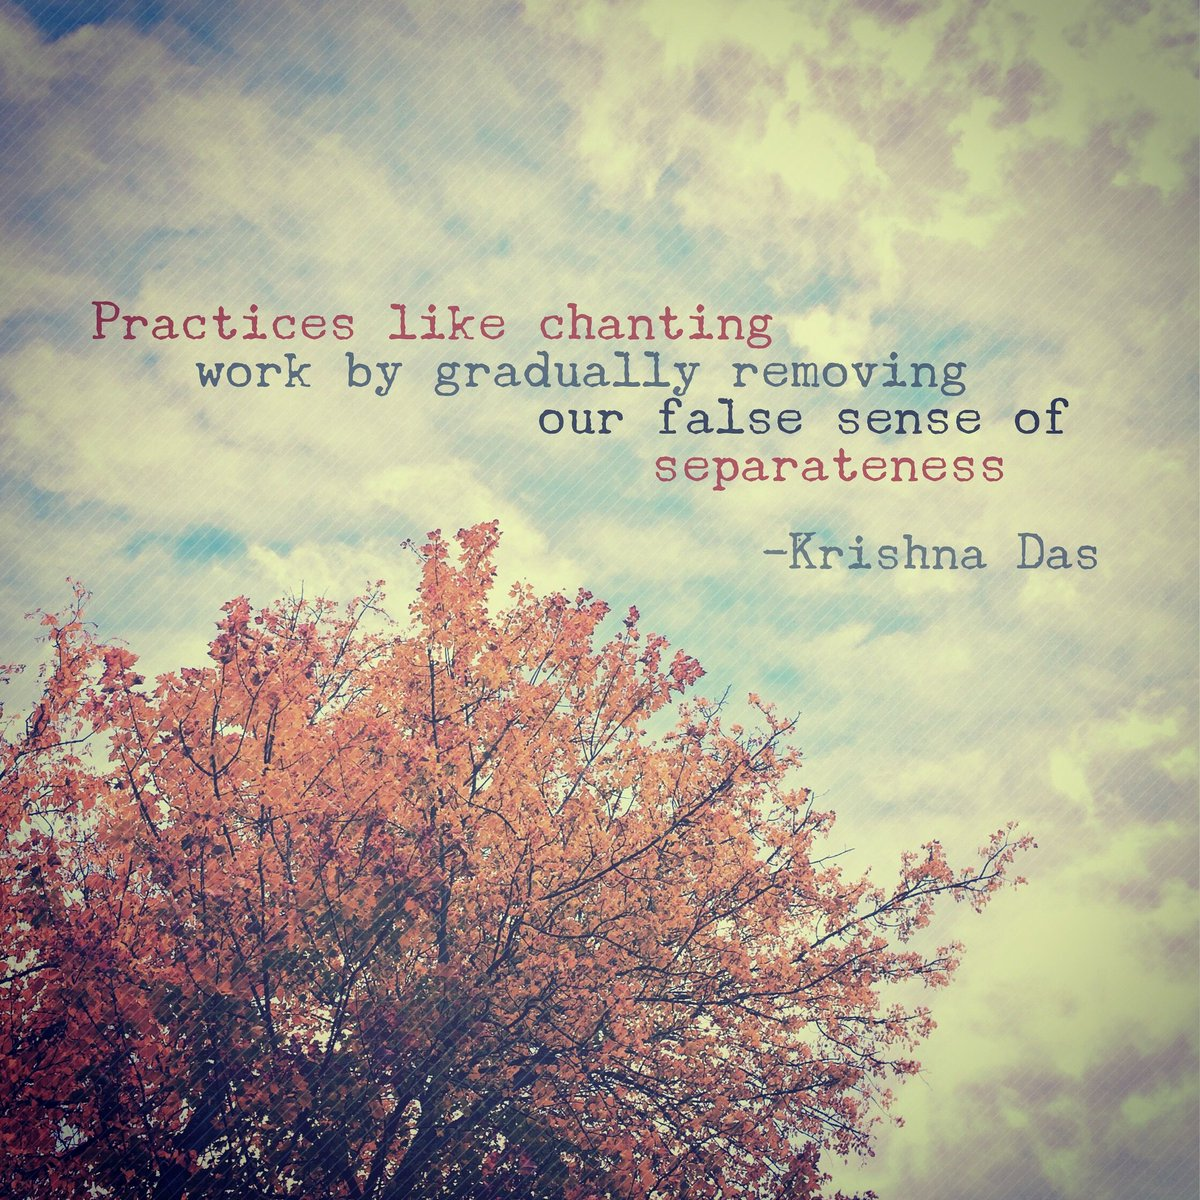 @KrishnaDas's photo on #WisdomWednesday